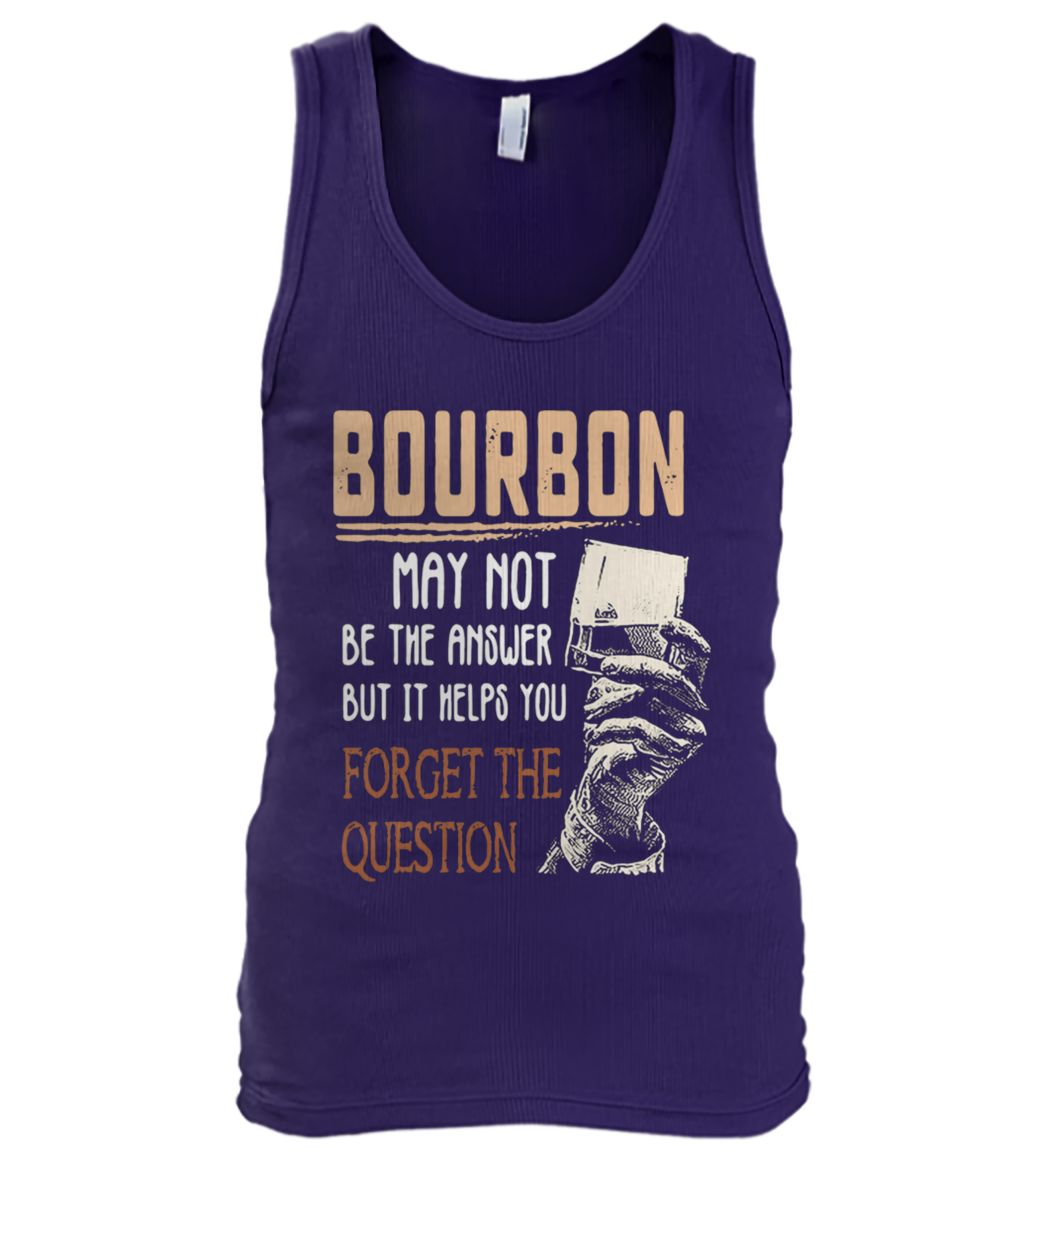 Bourbon may not be the answer but it helps you forget the question men's tank top